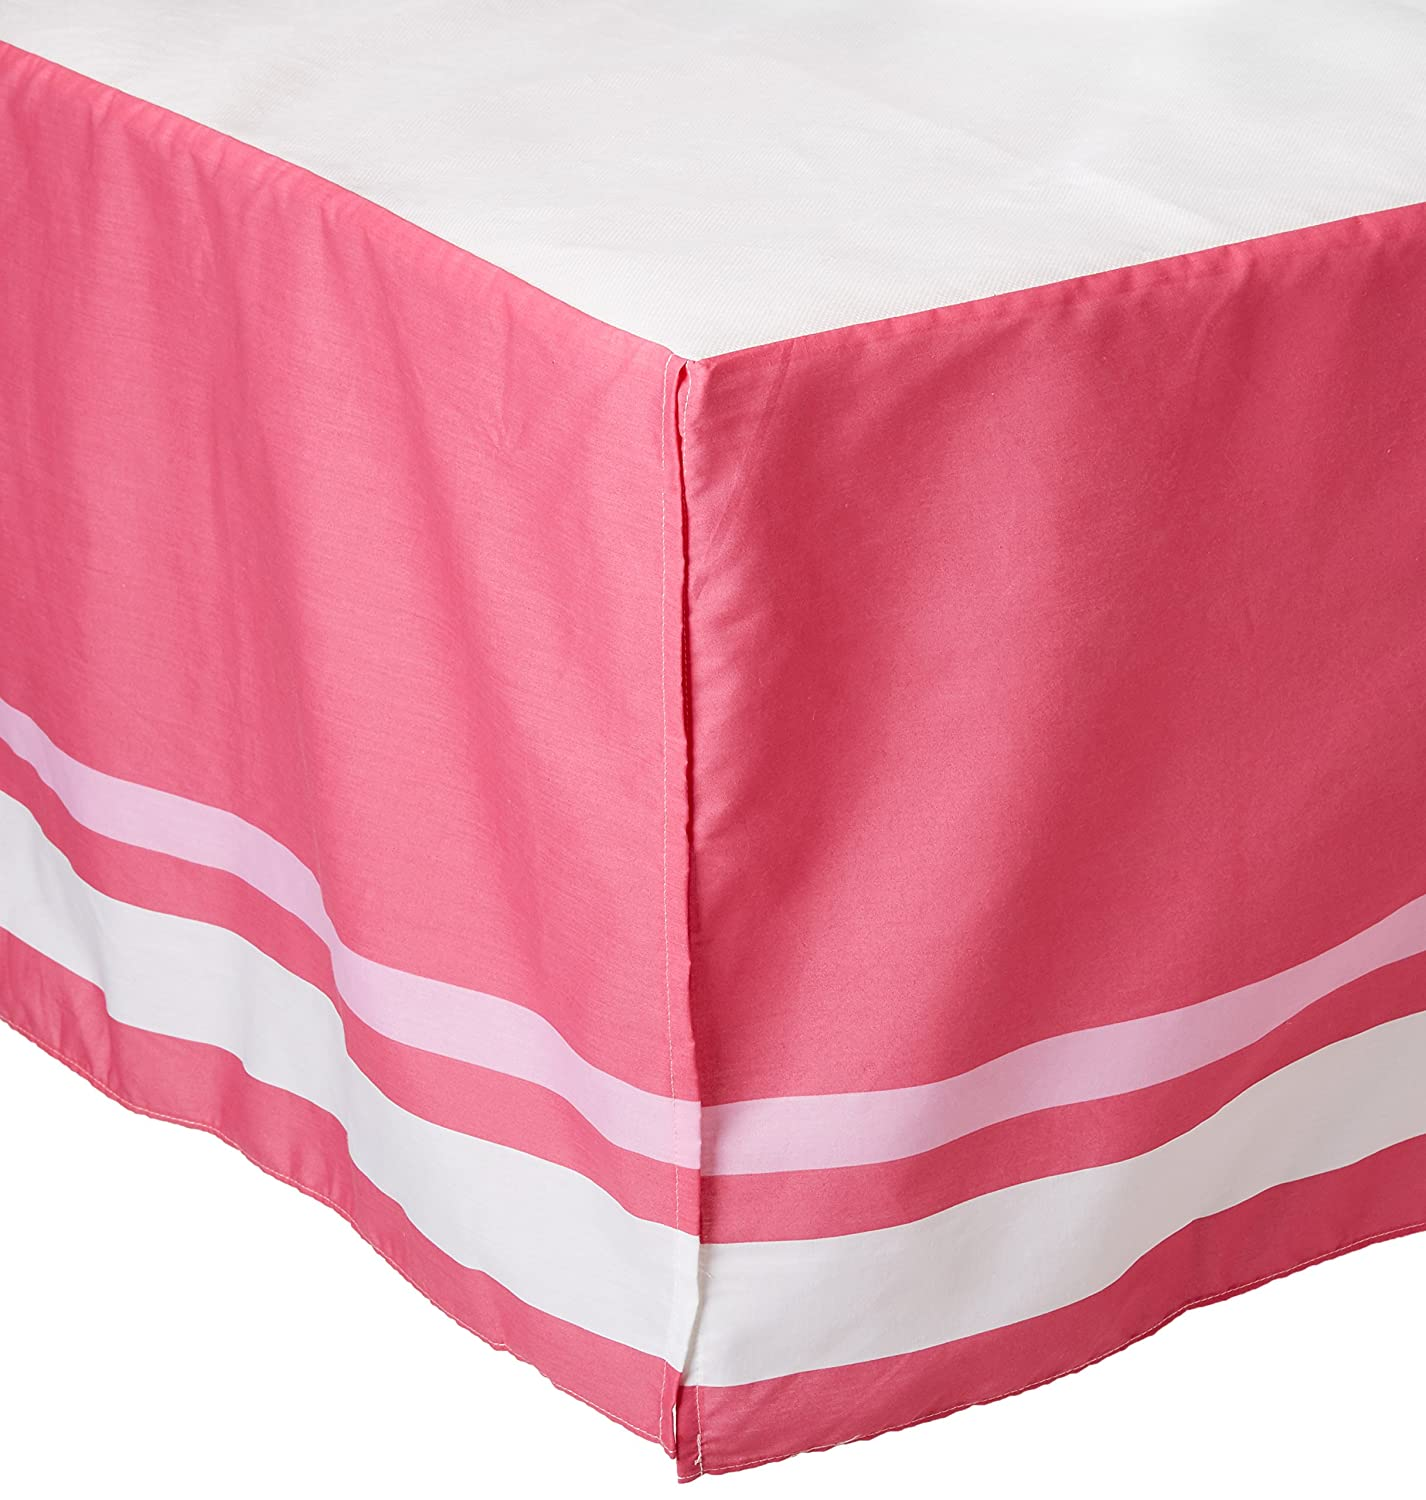 Sadie & Scout Boy Crib Skirt Crown Crafts Infant Products Sadie and Scout 3726018